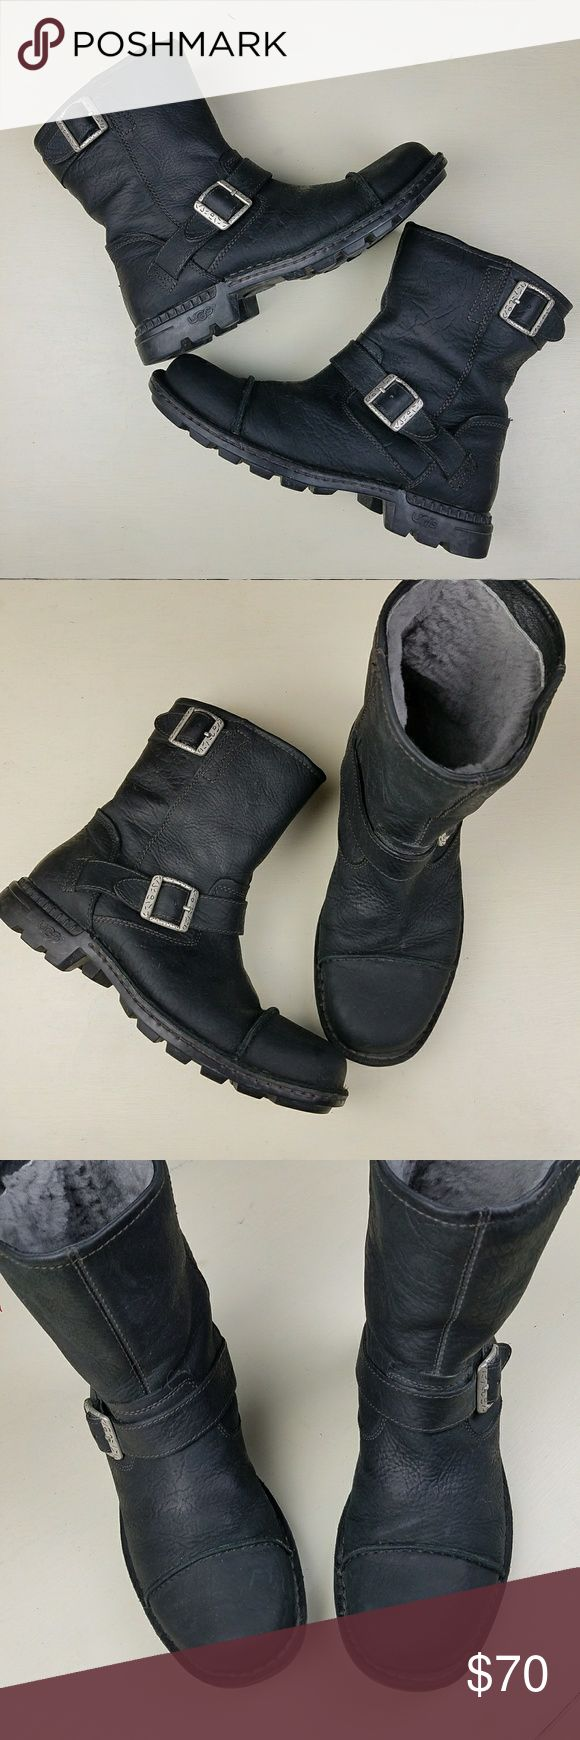 Black Leather Waterproof Ugg Boots sz 9 In great used condition - see tags for authenticity. Fabulous winter and rain boots! From a smoke-free home. UGG Shoes Combat & Moto Boots